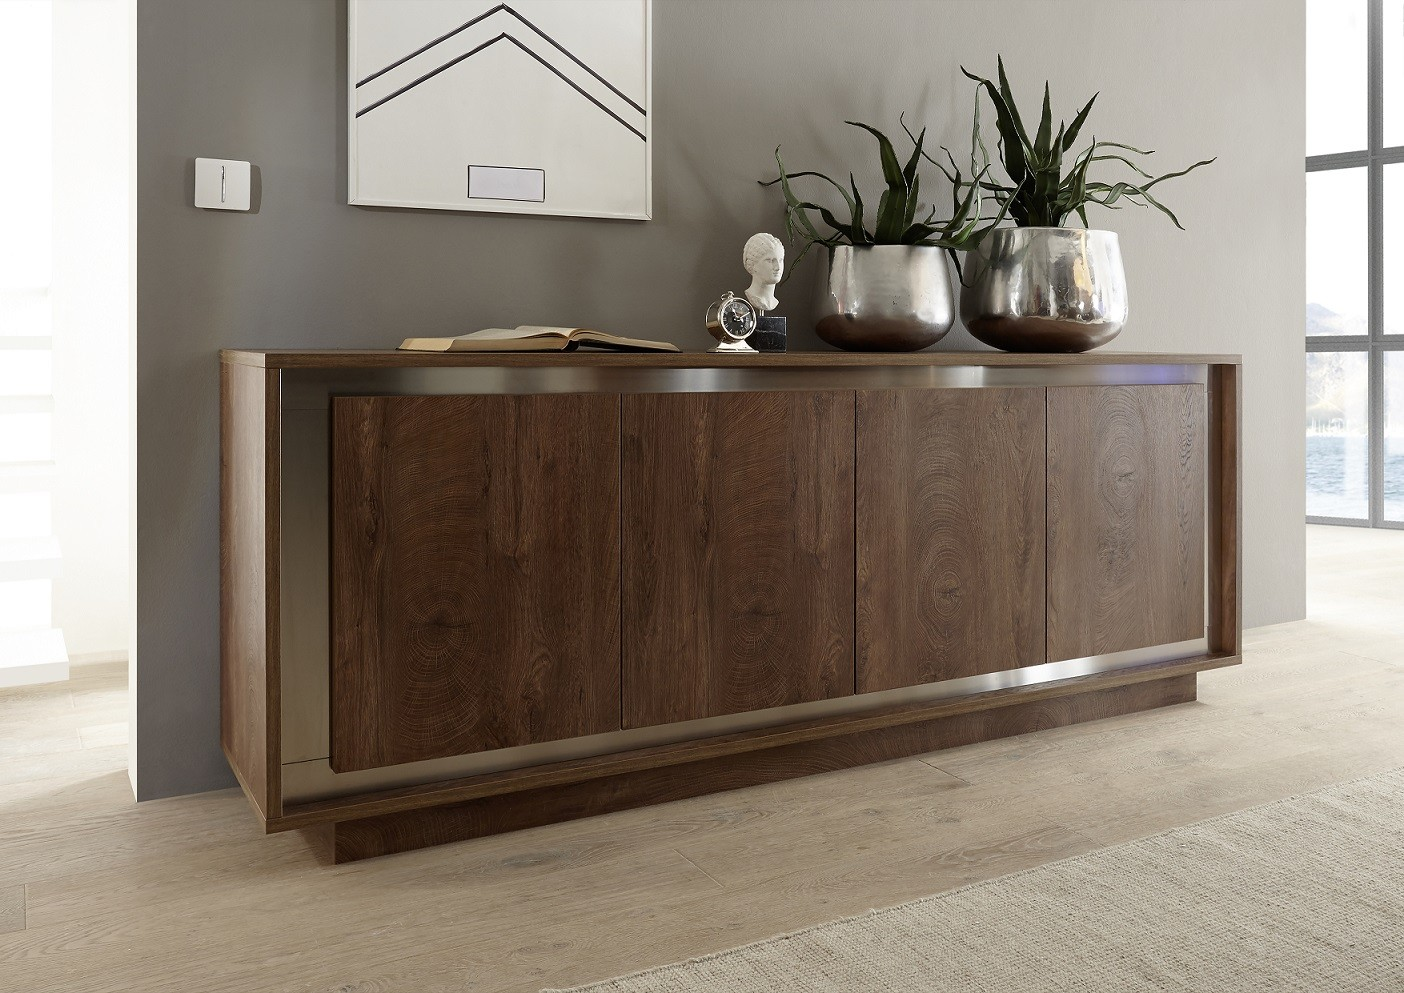 contemporary sideboards ideas FPBKKHC